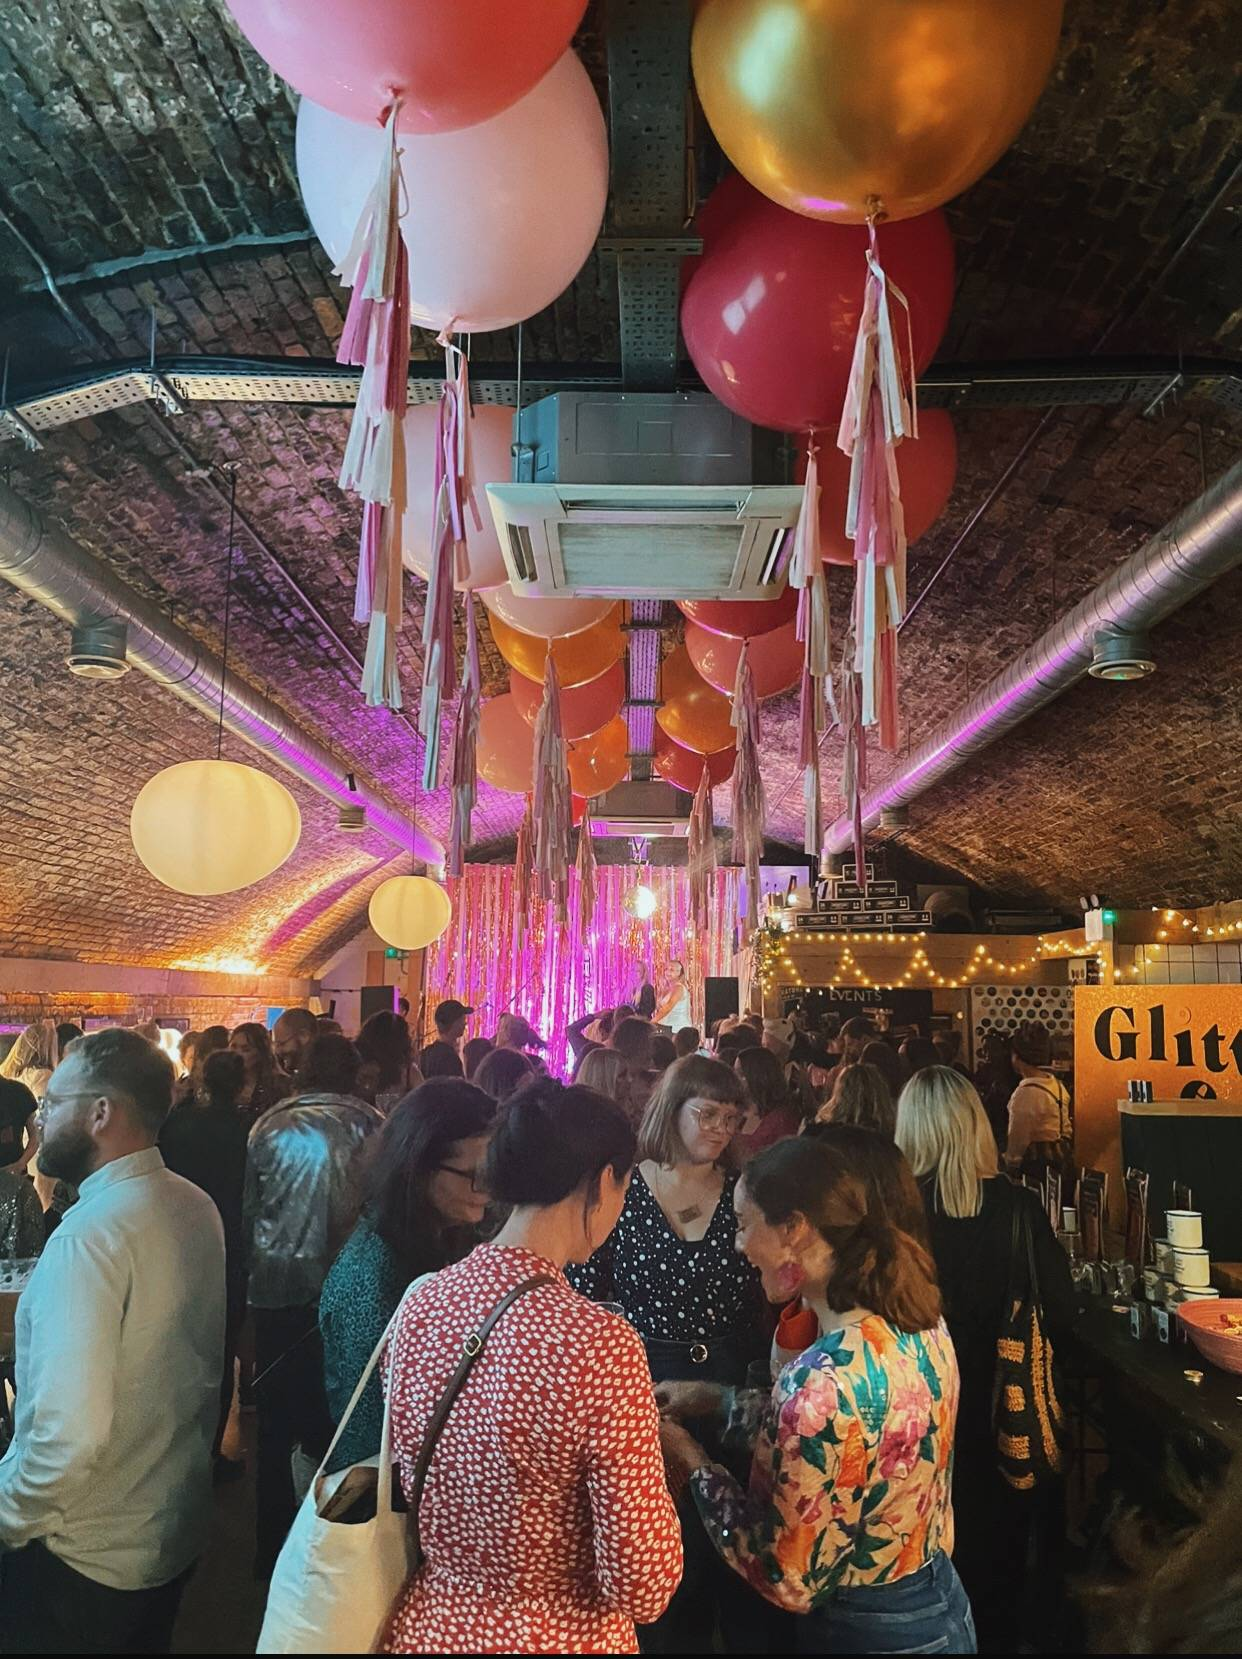 Image shows beautifully decorated venue with balloons, streamers, pink hues, and our biodegradable glitter bar.